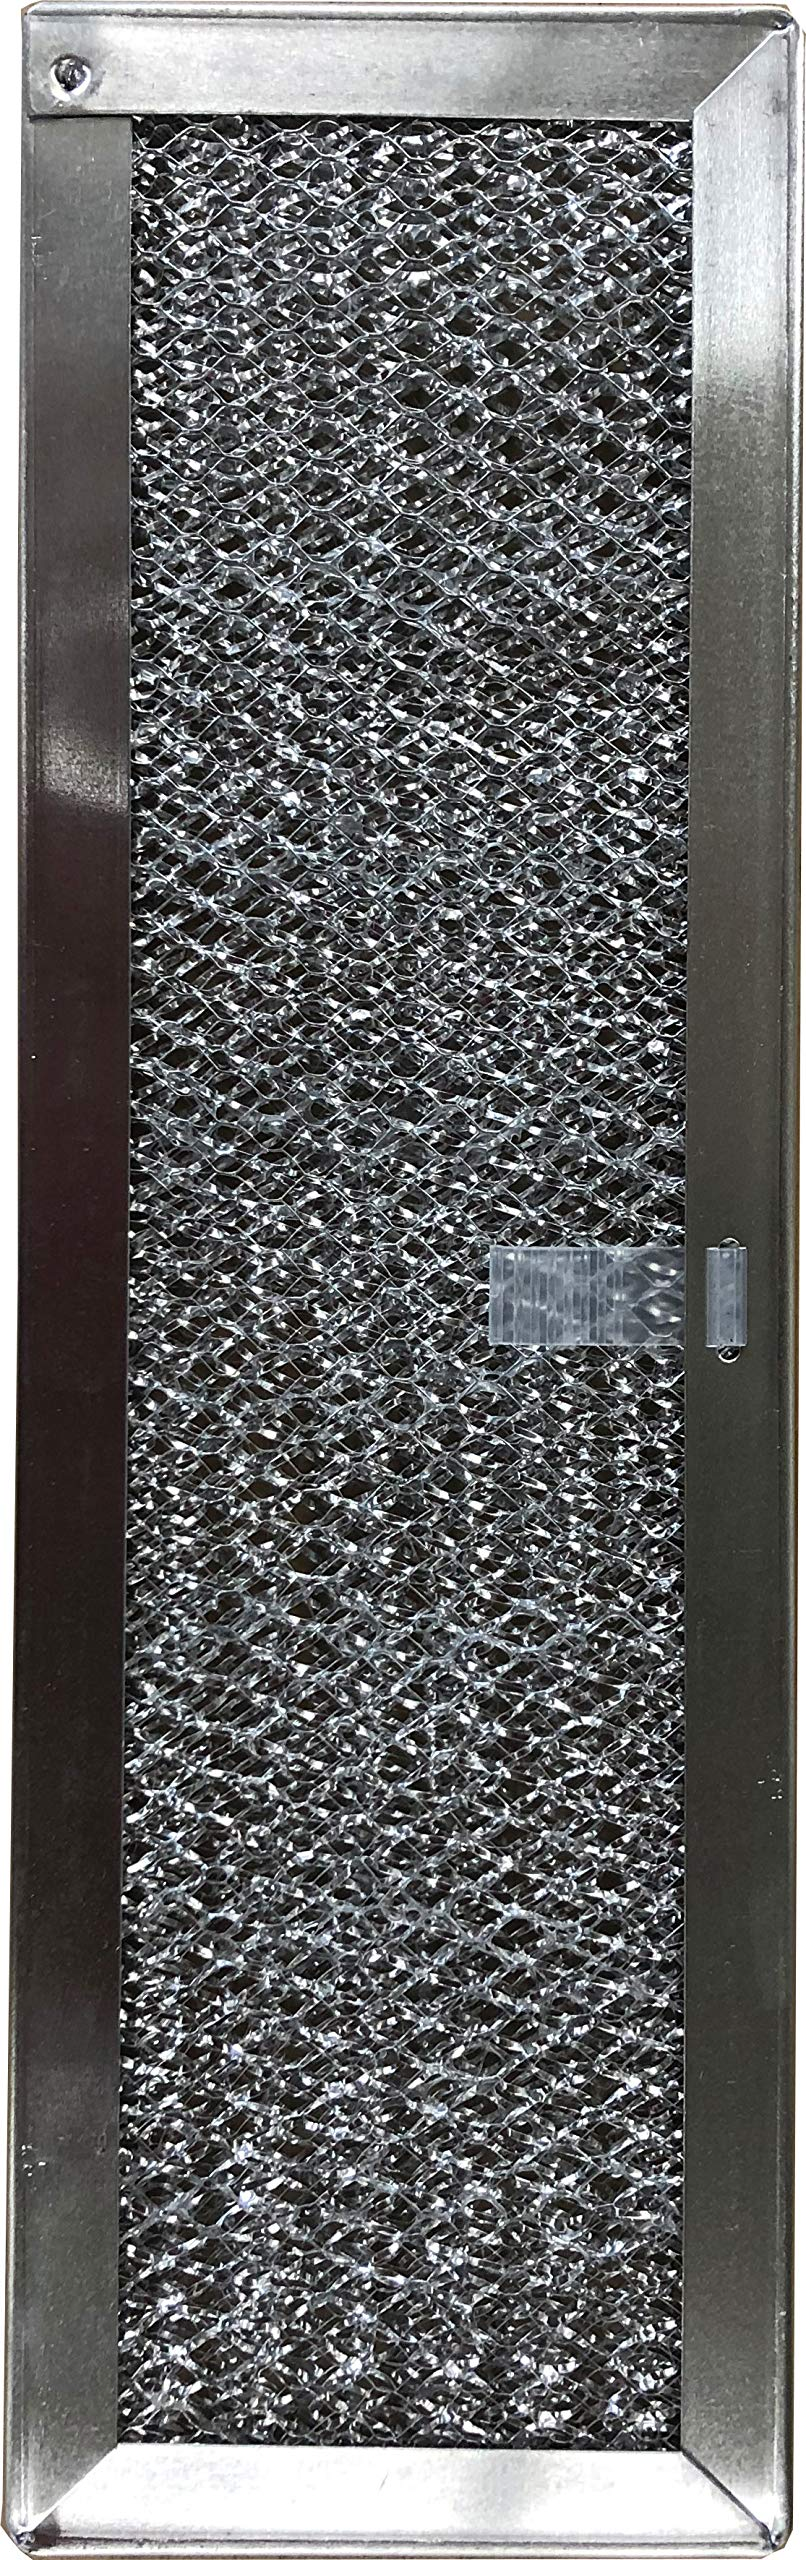 Replacement Aluminum Range Filter Compatible With Broan 97009787A, Creda 97009787A, LG / Zenith 9700